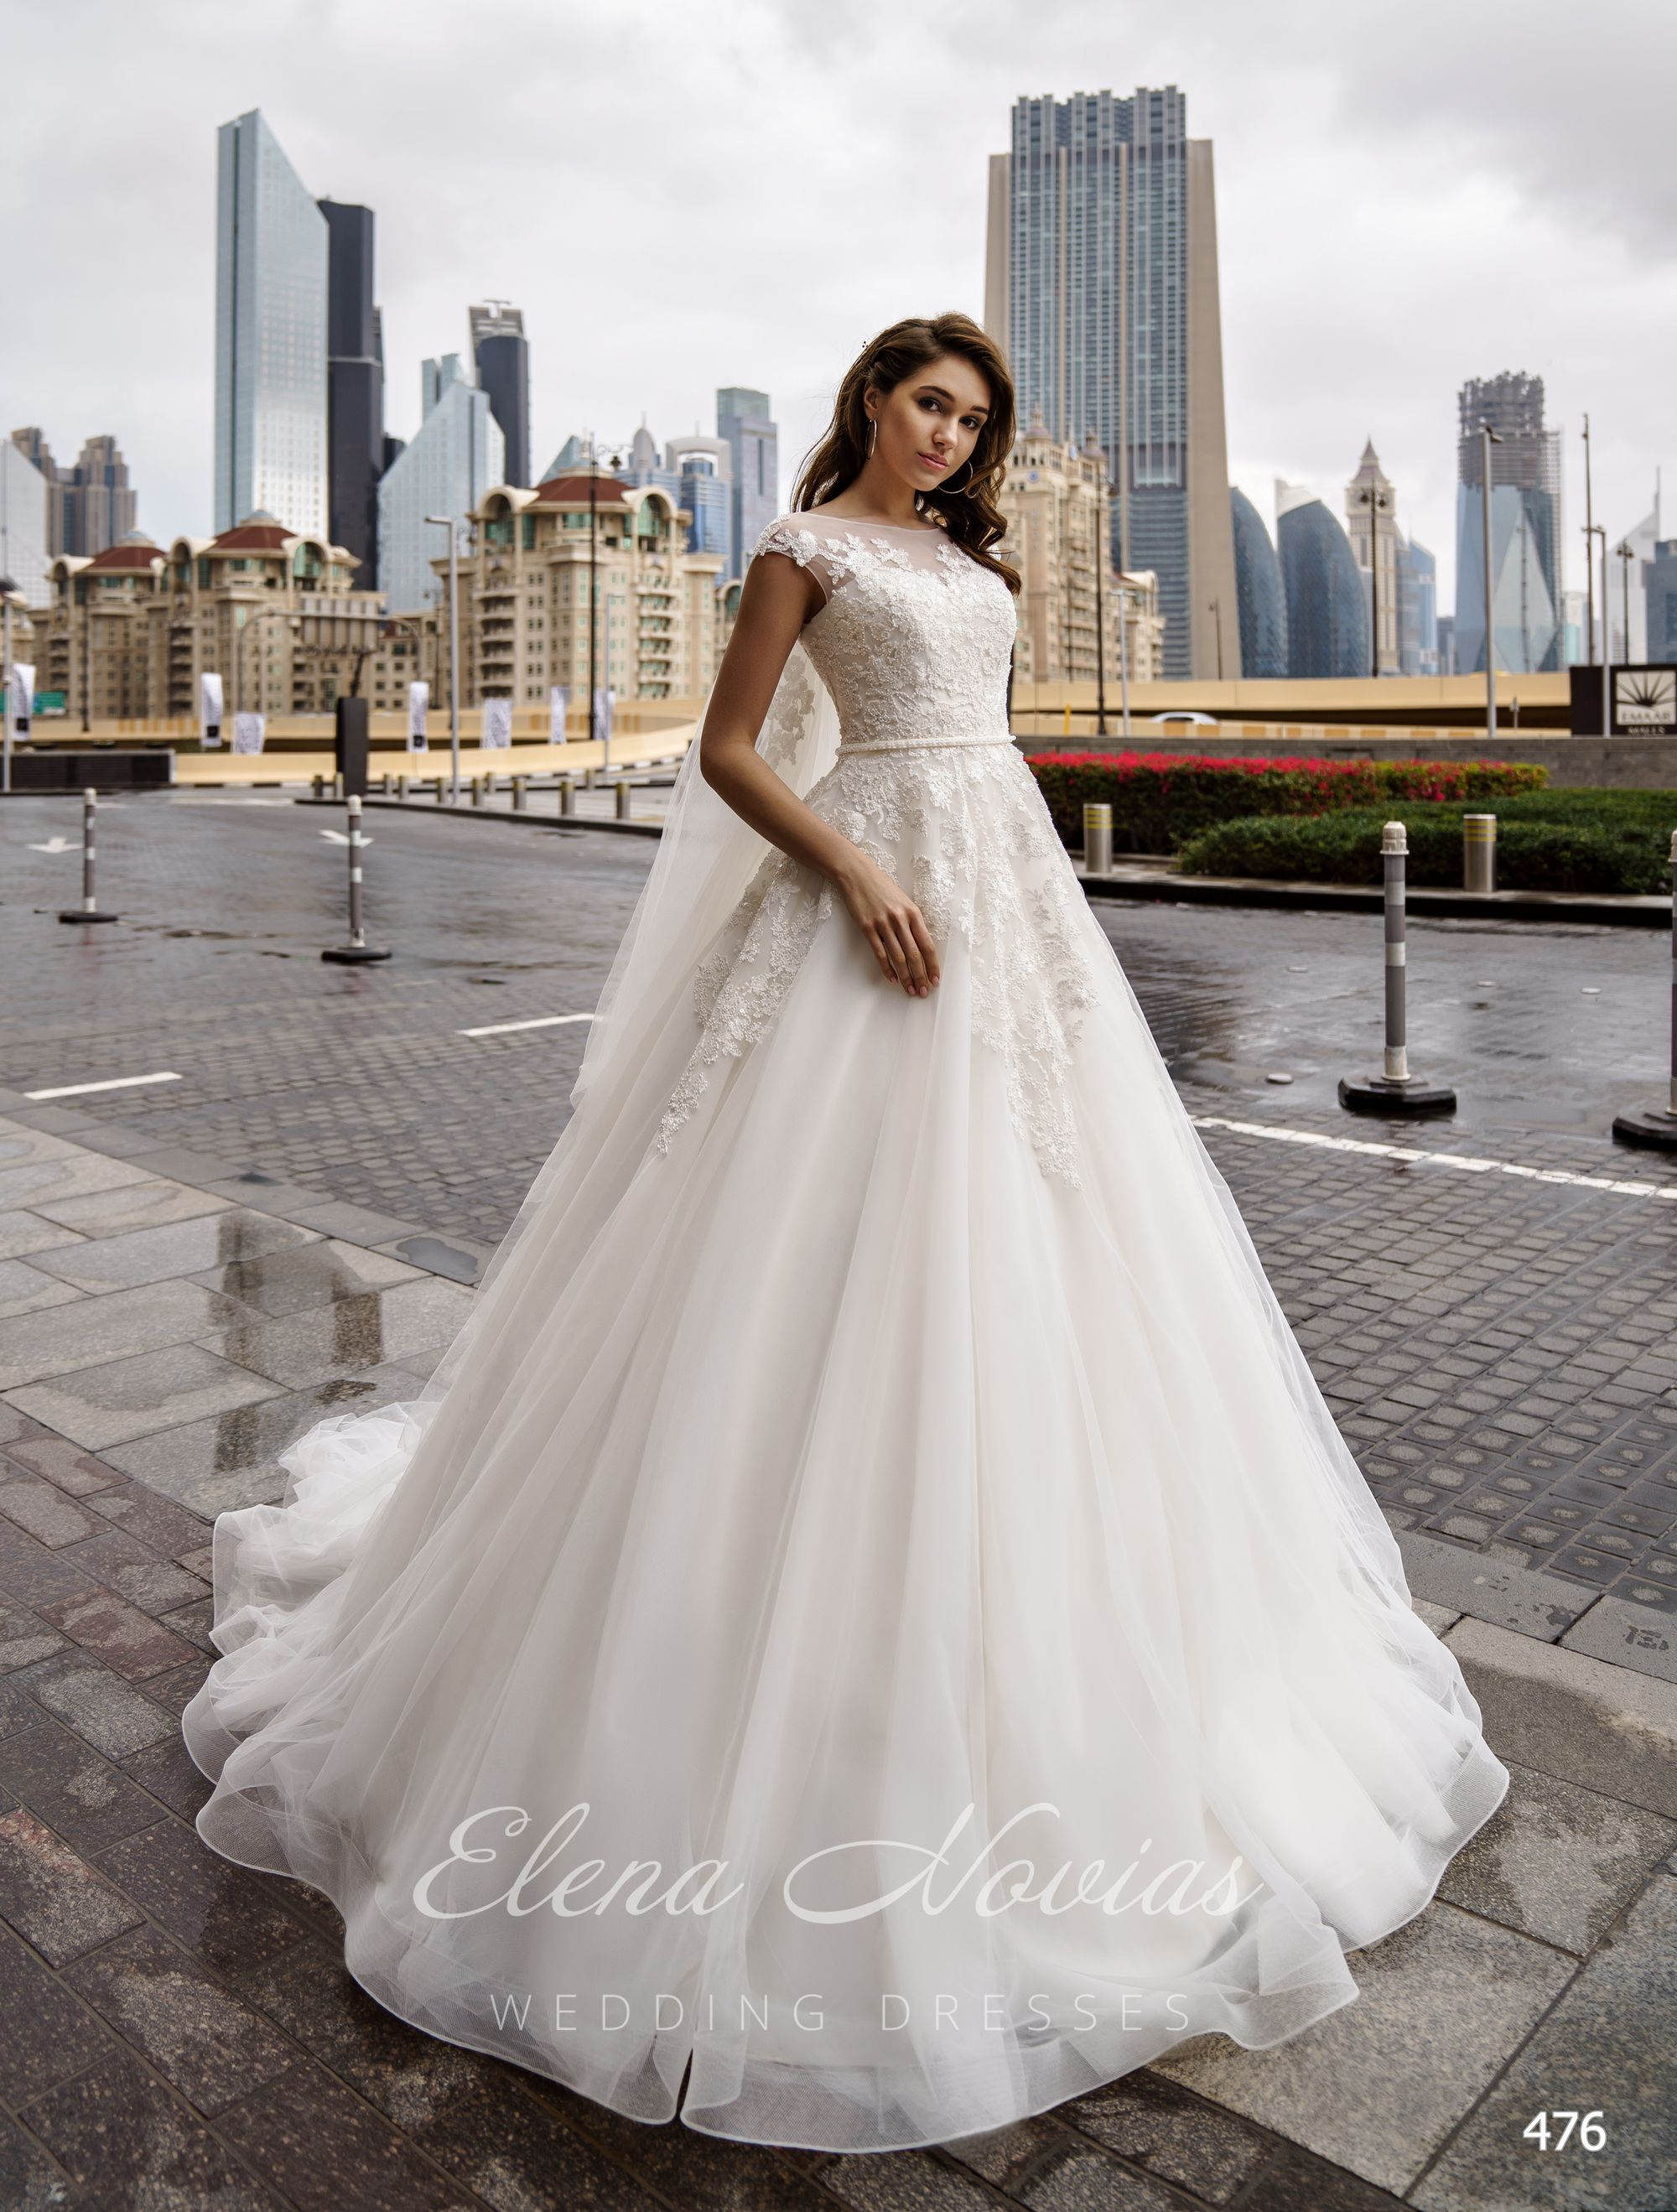 Wedding dresses 476